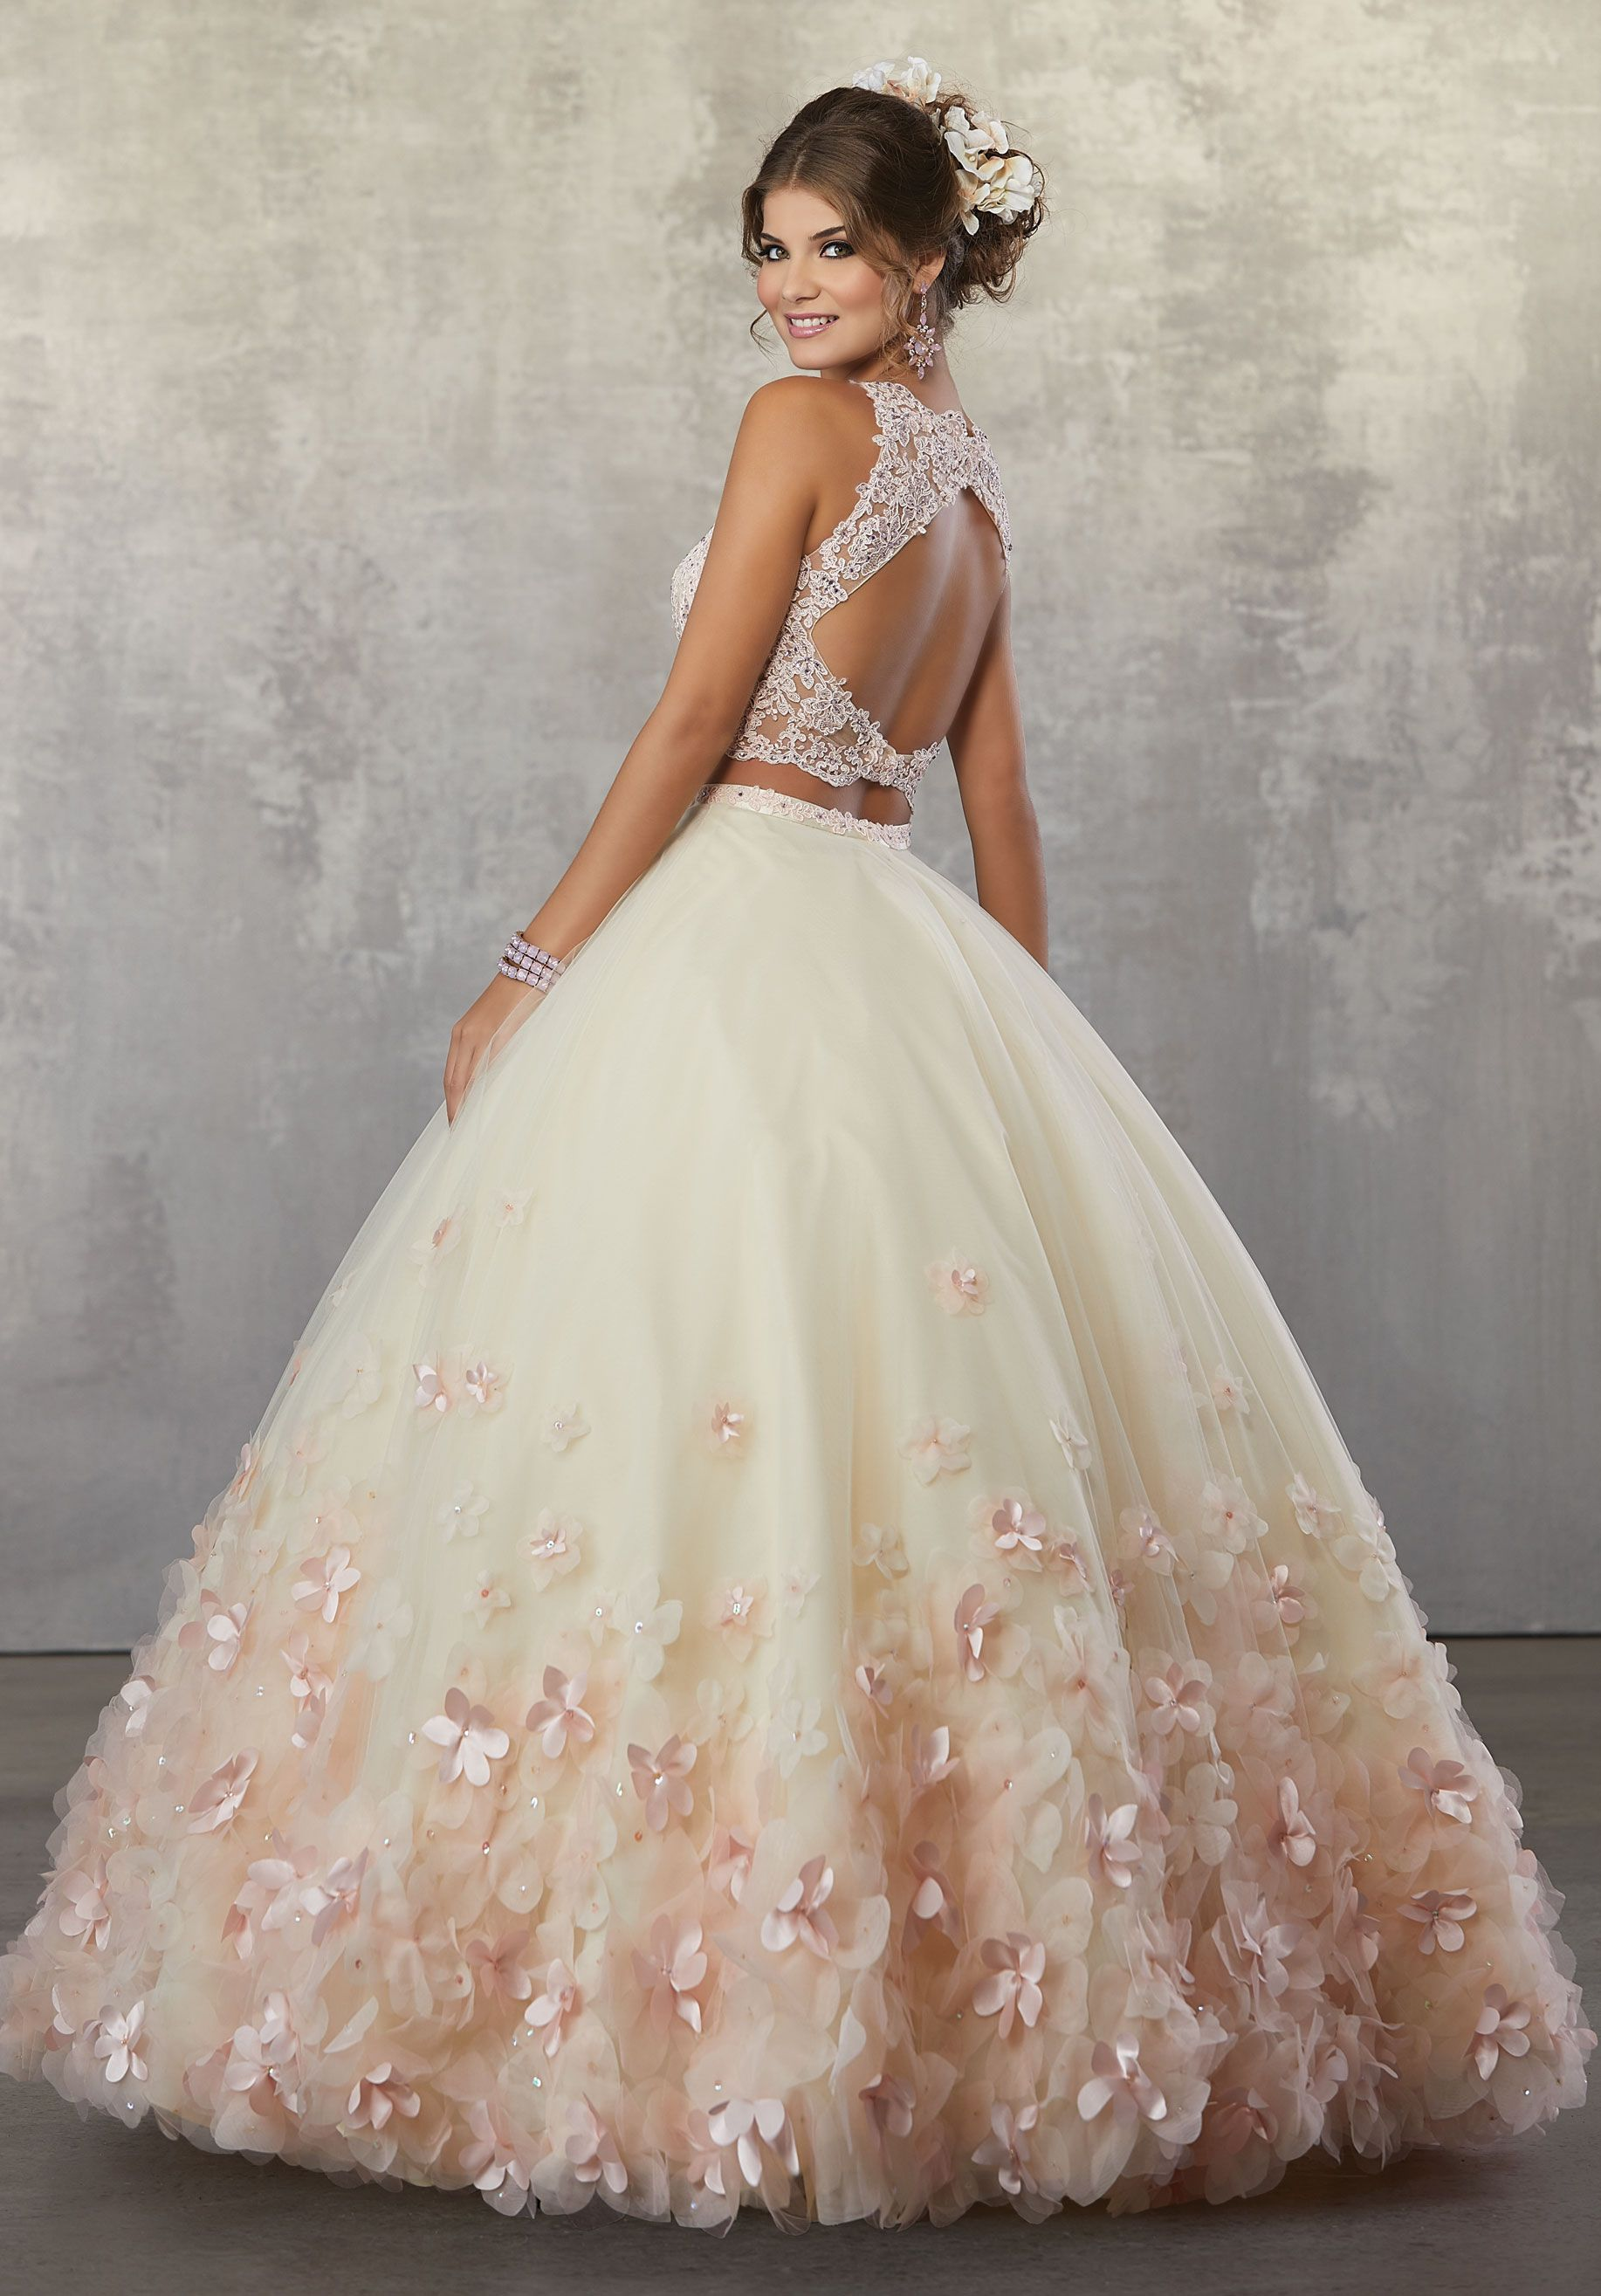 Fun and feminine this quinceañera ballgown beautifully combines a